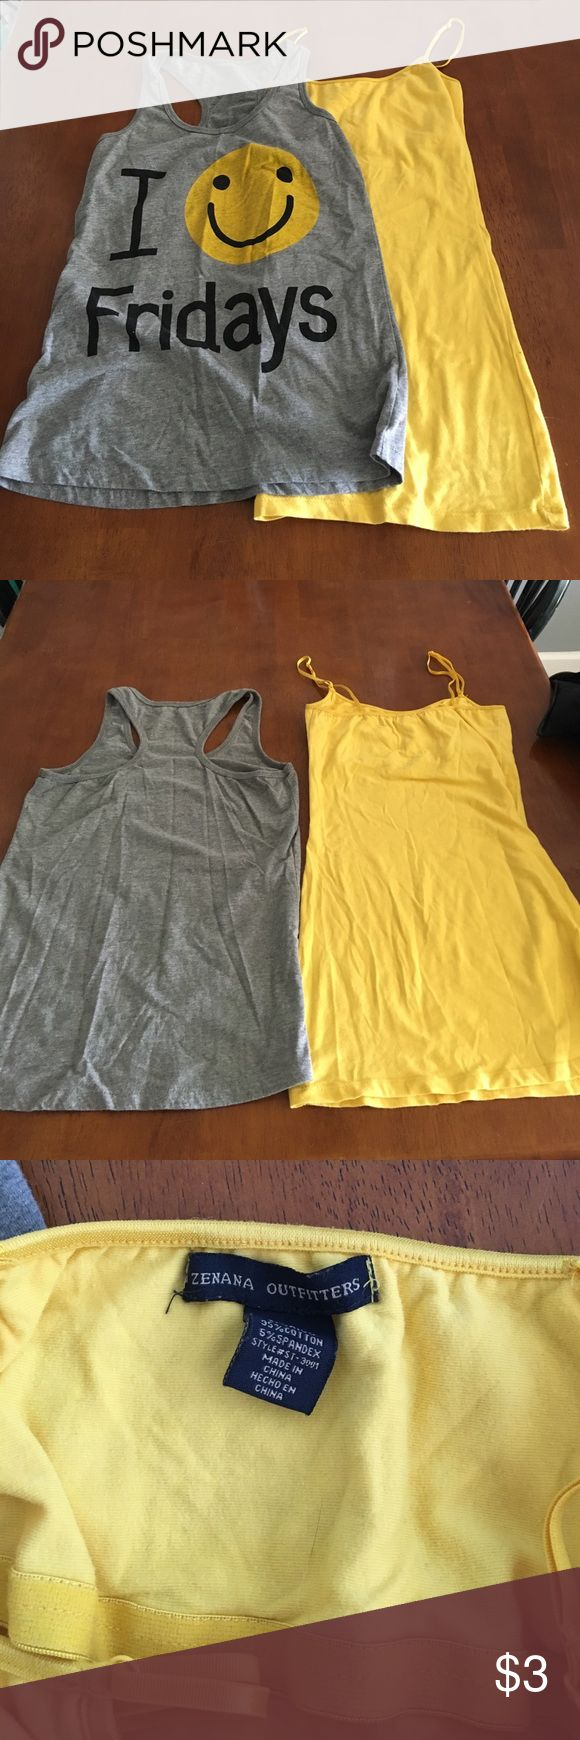 Pair of tanks - yellow cami & gray racerback small Cute tanks can be worn separate or together to make the yellow smiley face pop. Like if you 🤗 Fridays! Forever 21 Tops Tank Tops